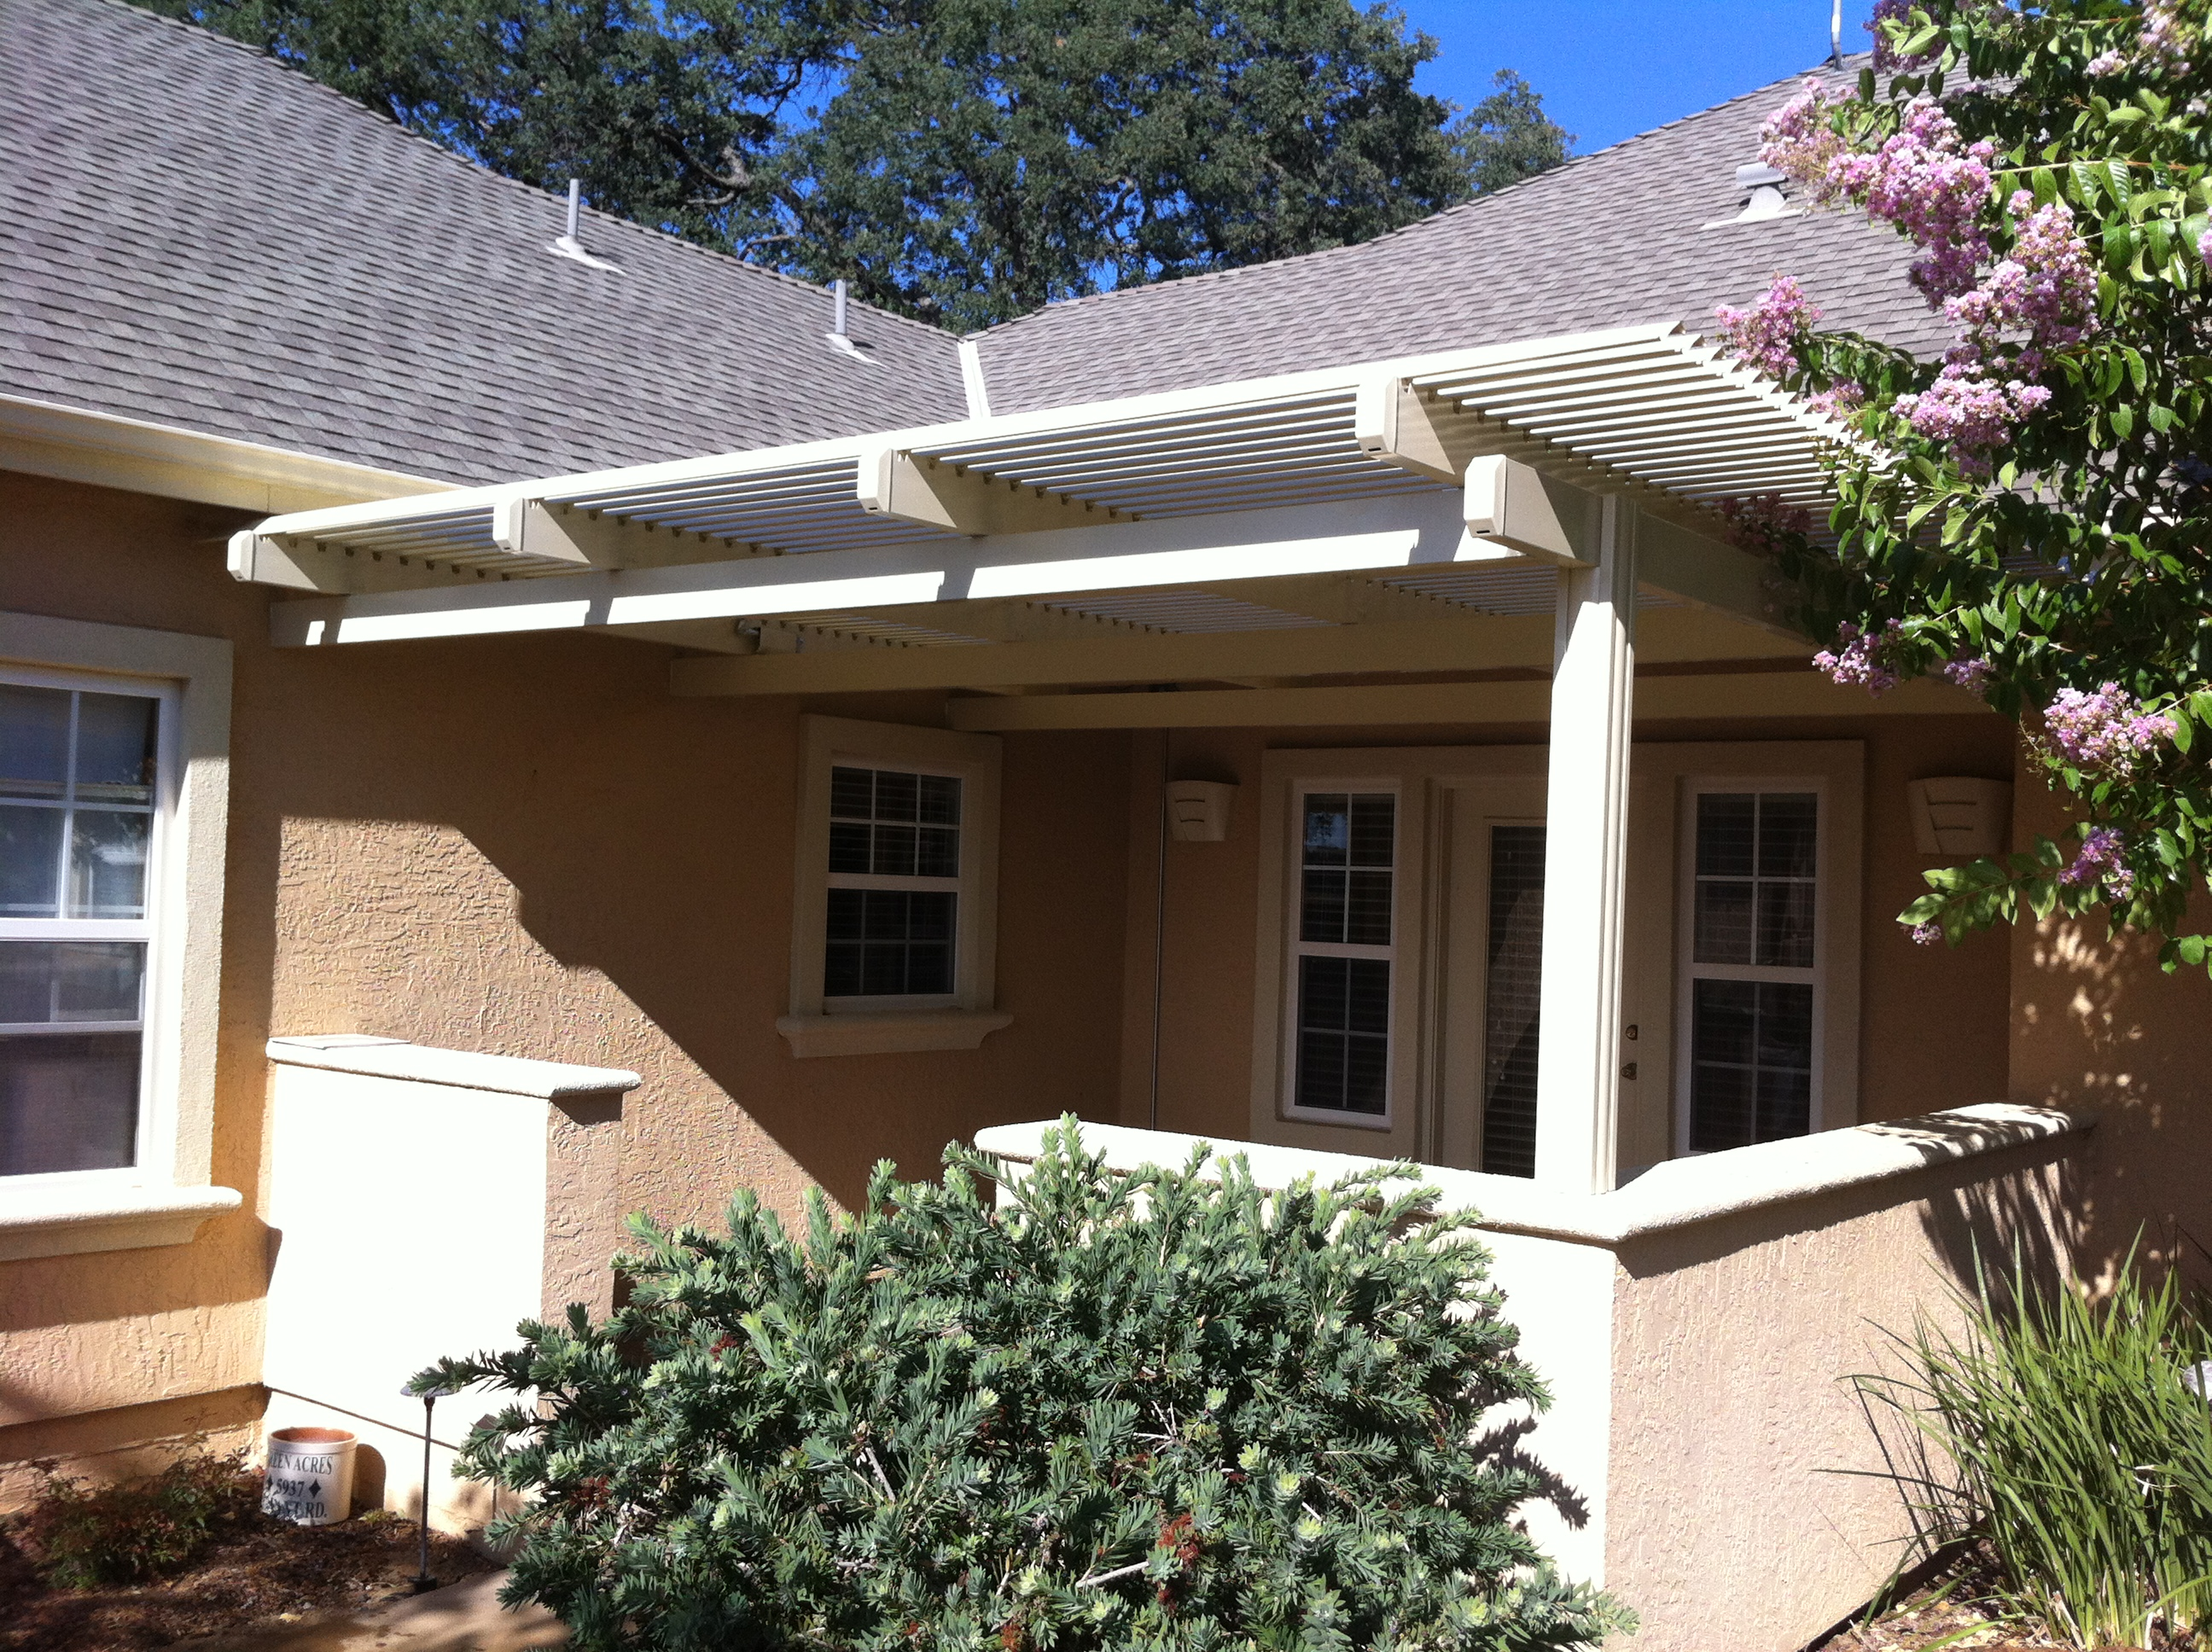 20.  Solara patio cover - South Sac